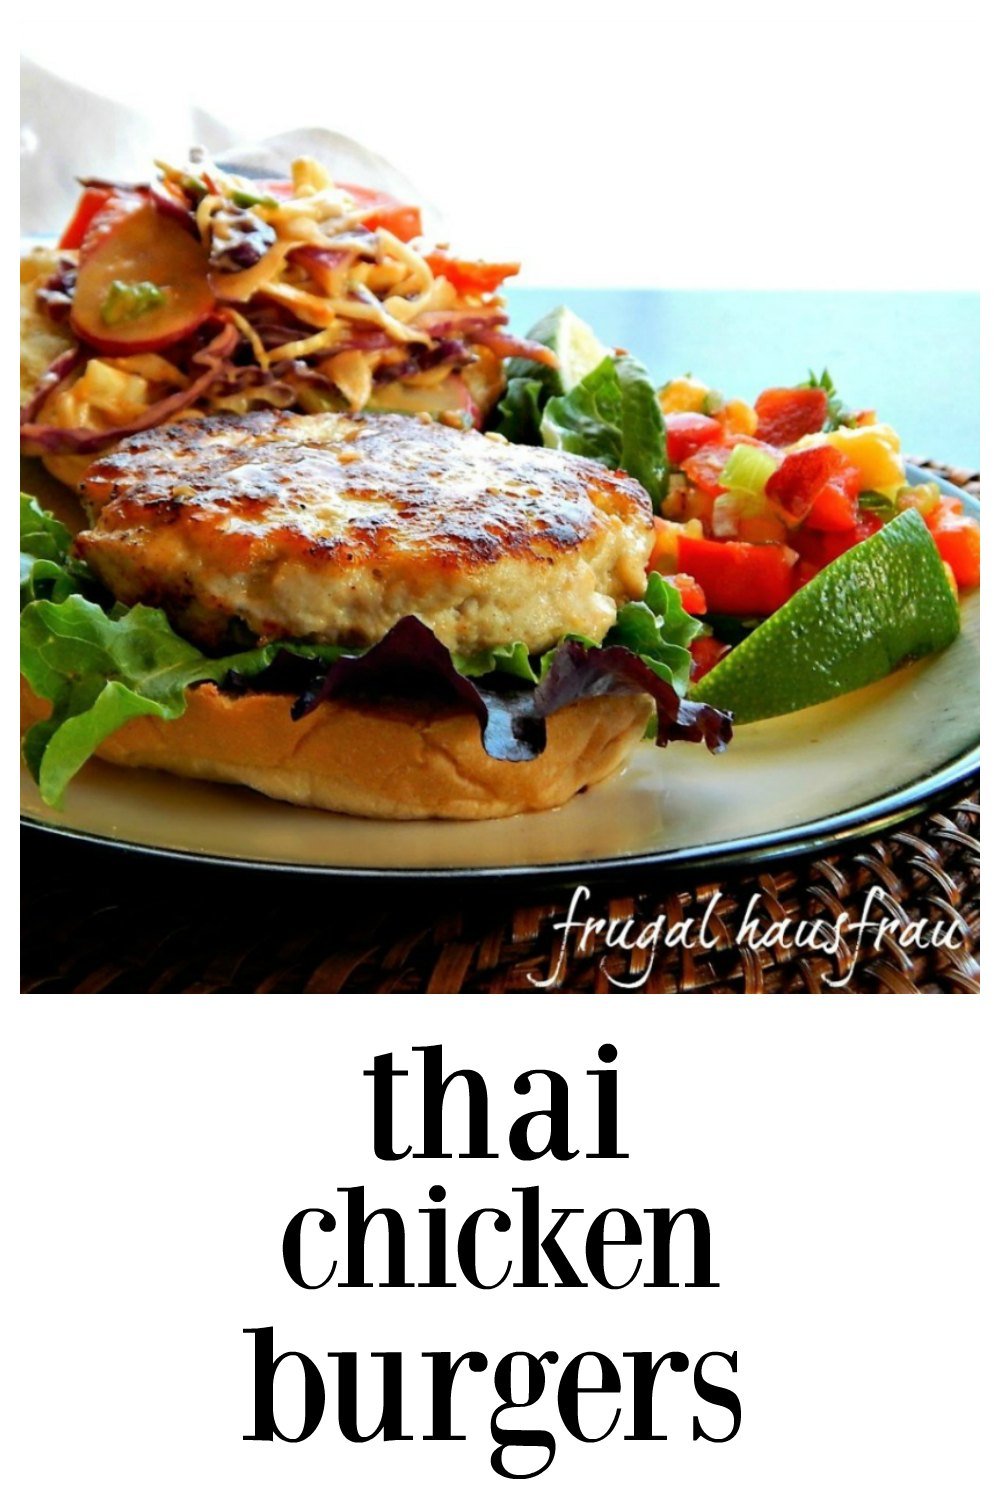 Thai Chicken Burgers are beautiful. The Thai flavors of garlic, ginger, scallions & lime are carried throughout & Thai Peanut Slaw just brings the flavor home. There's a secret that makes these juicy#ChickenBurger #ThaiChickenBurger #ThaiGrilledChicken